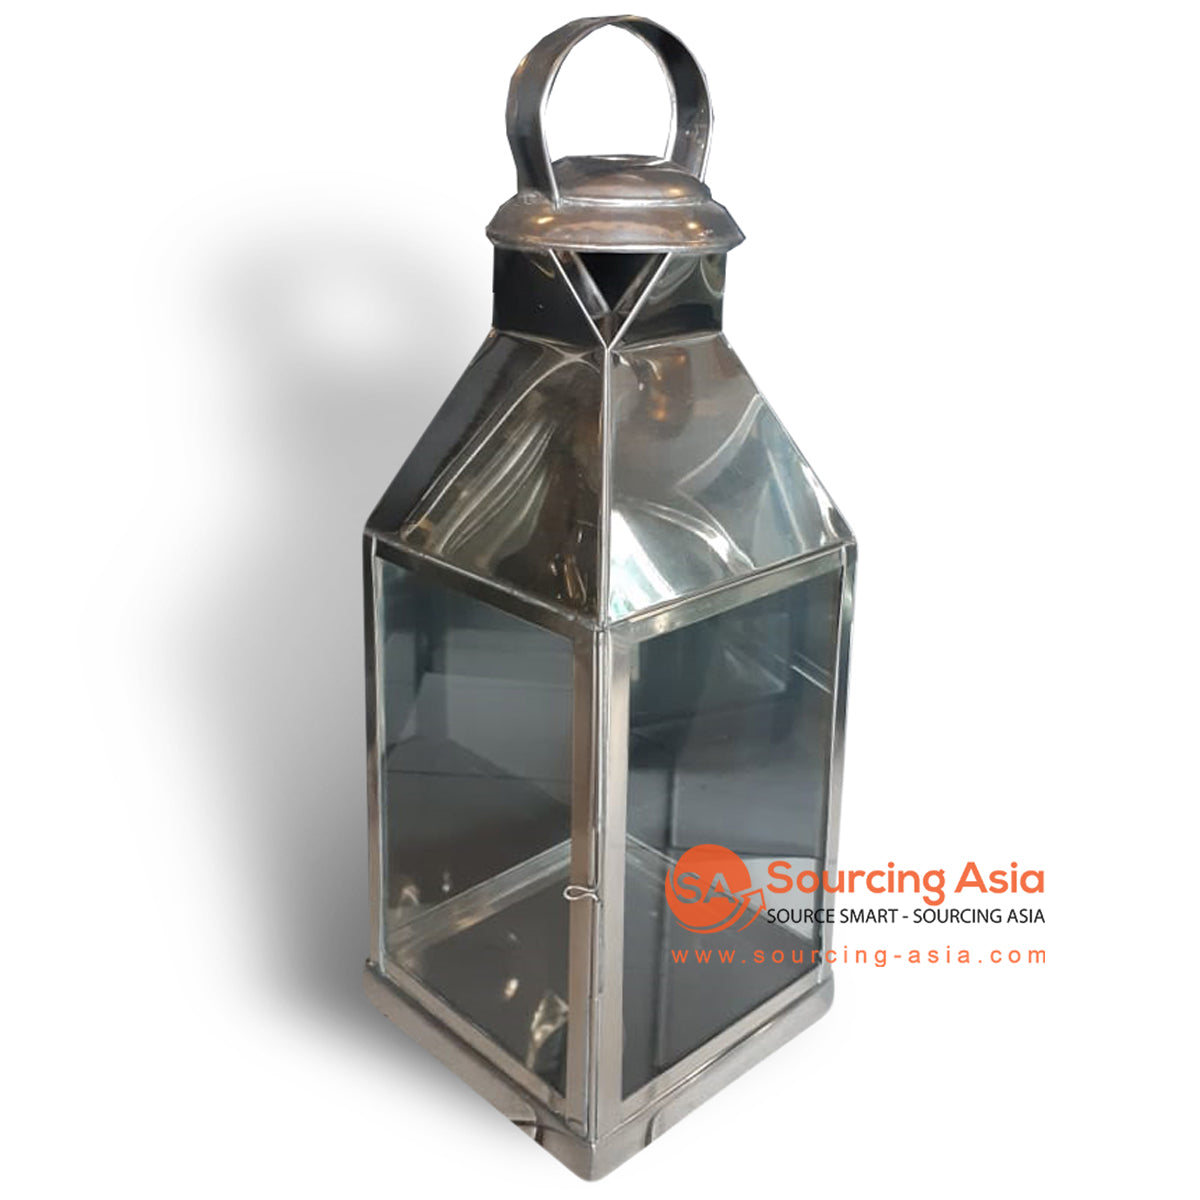 ODE036A-4 COPPER LANTERN